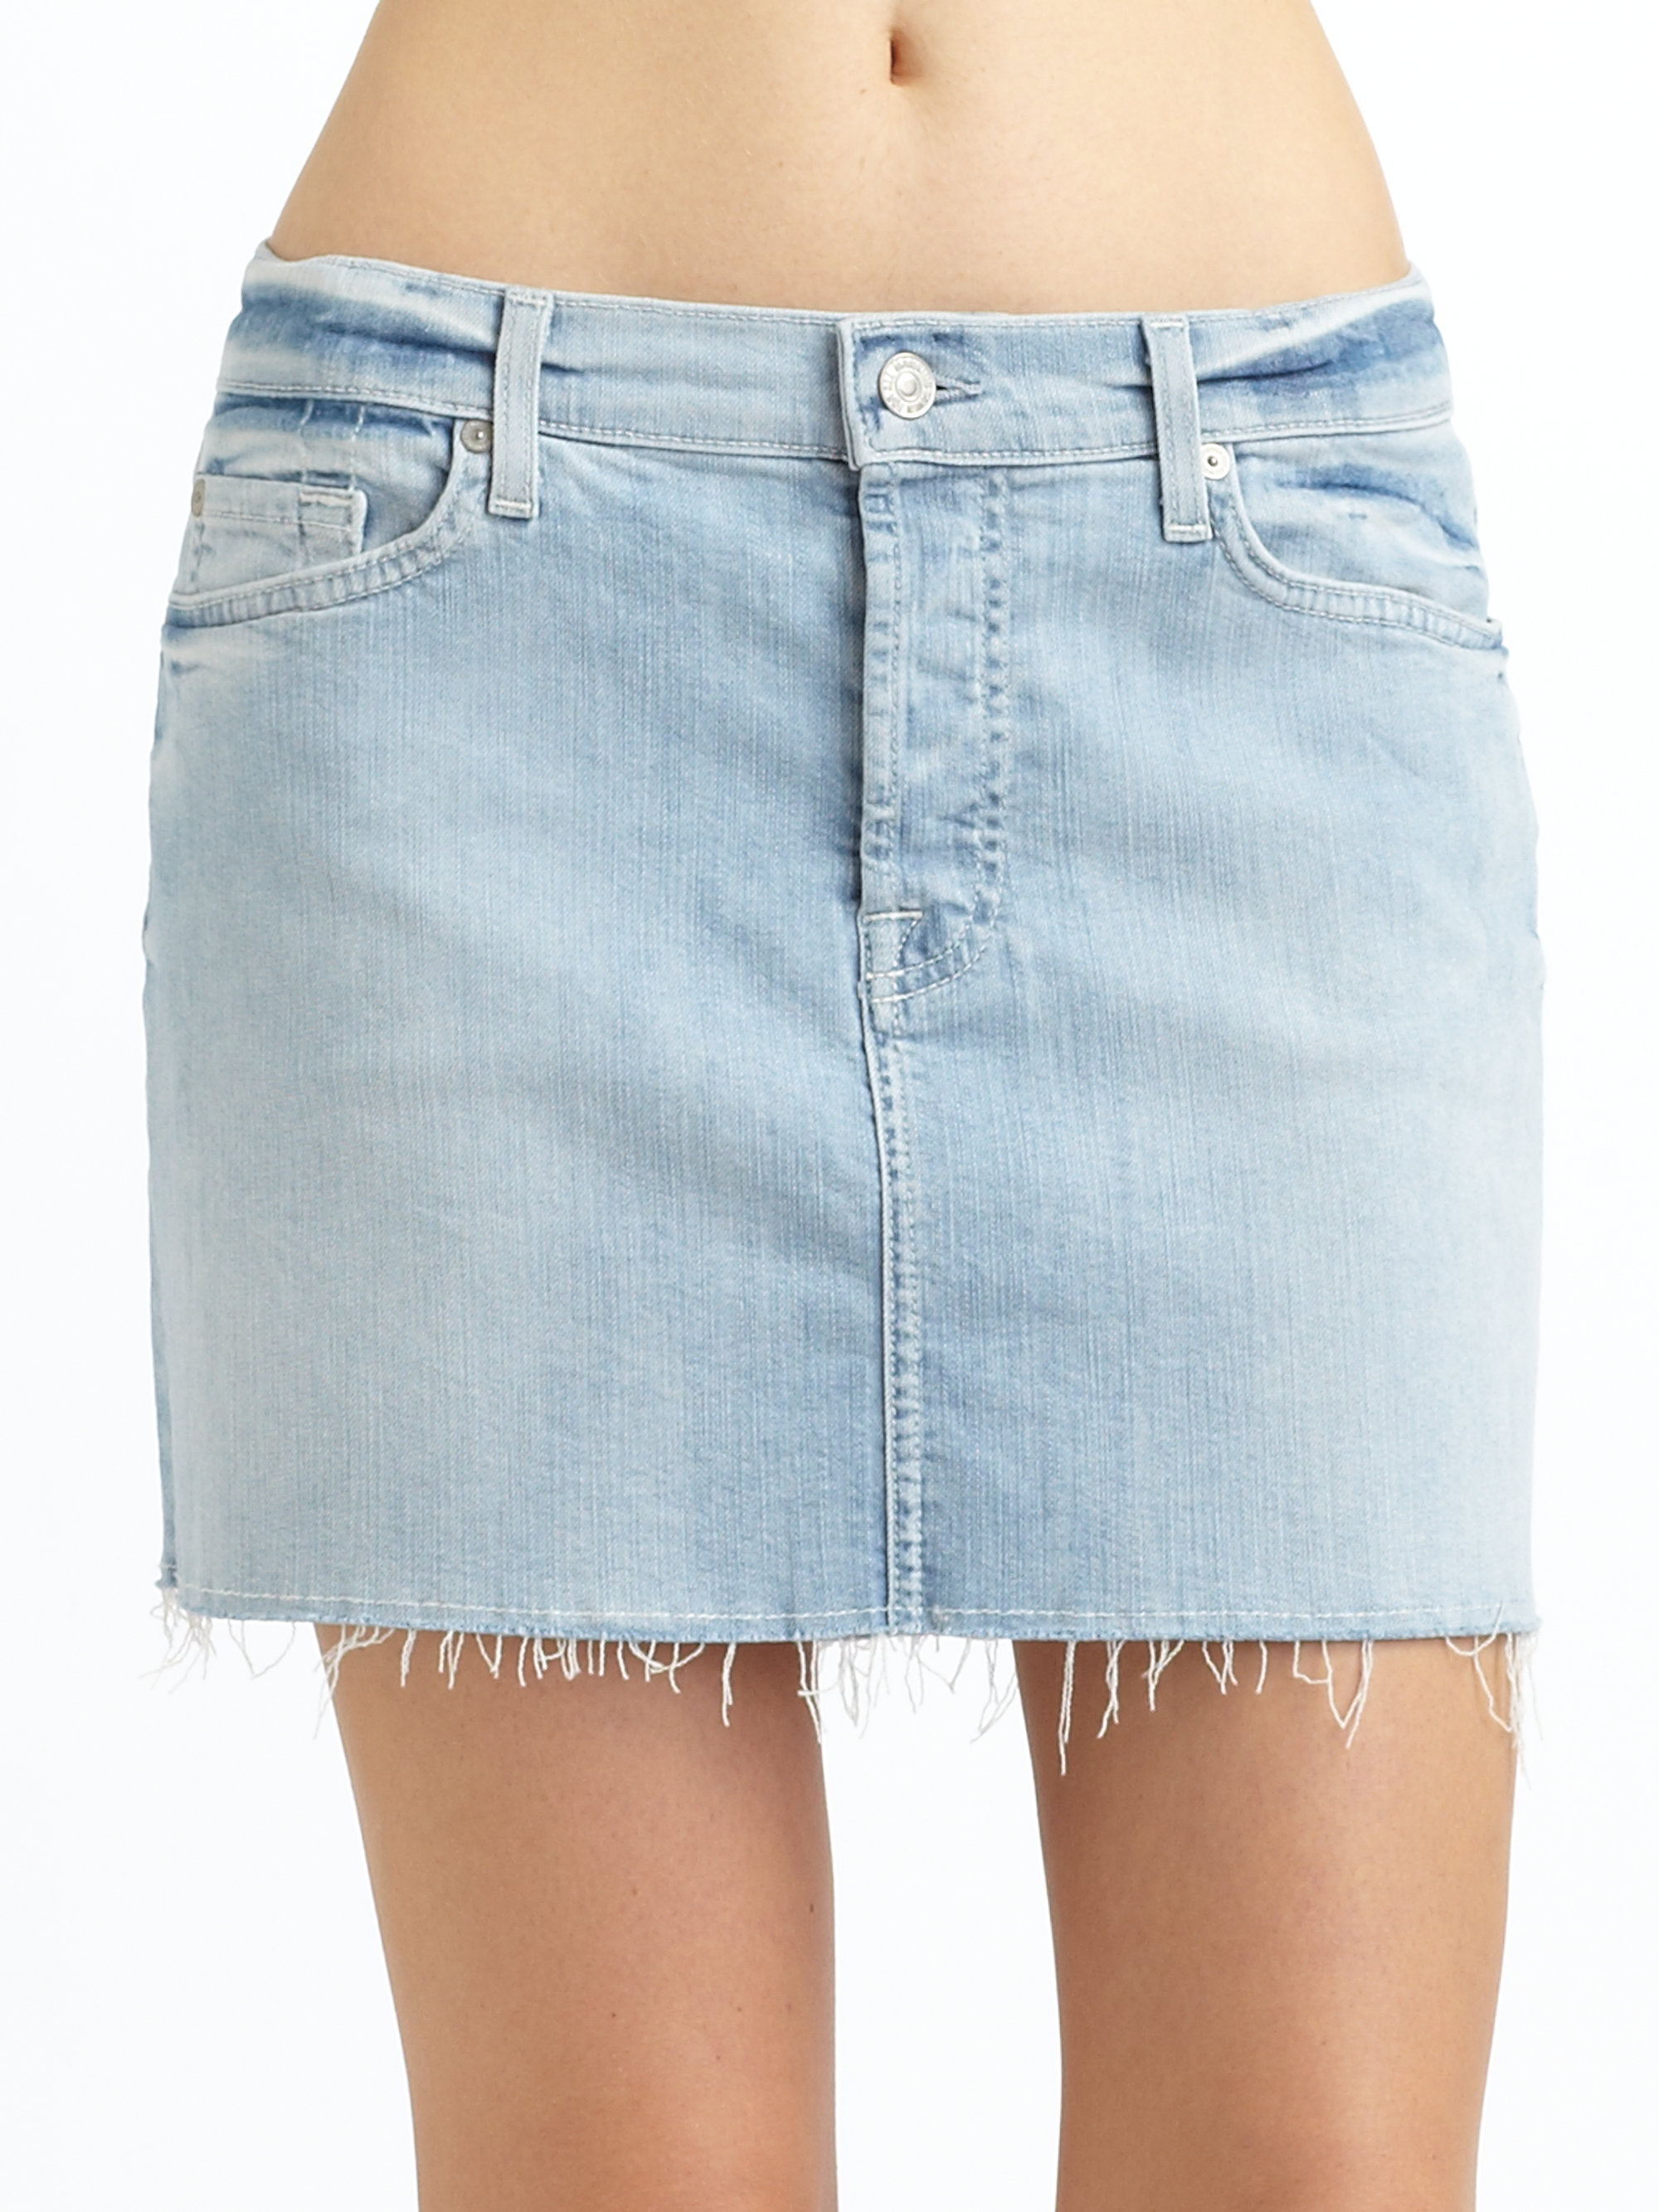 7 for all mankind Denim Cutoff Skirt in Blue | Lyst